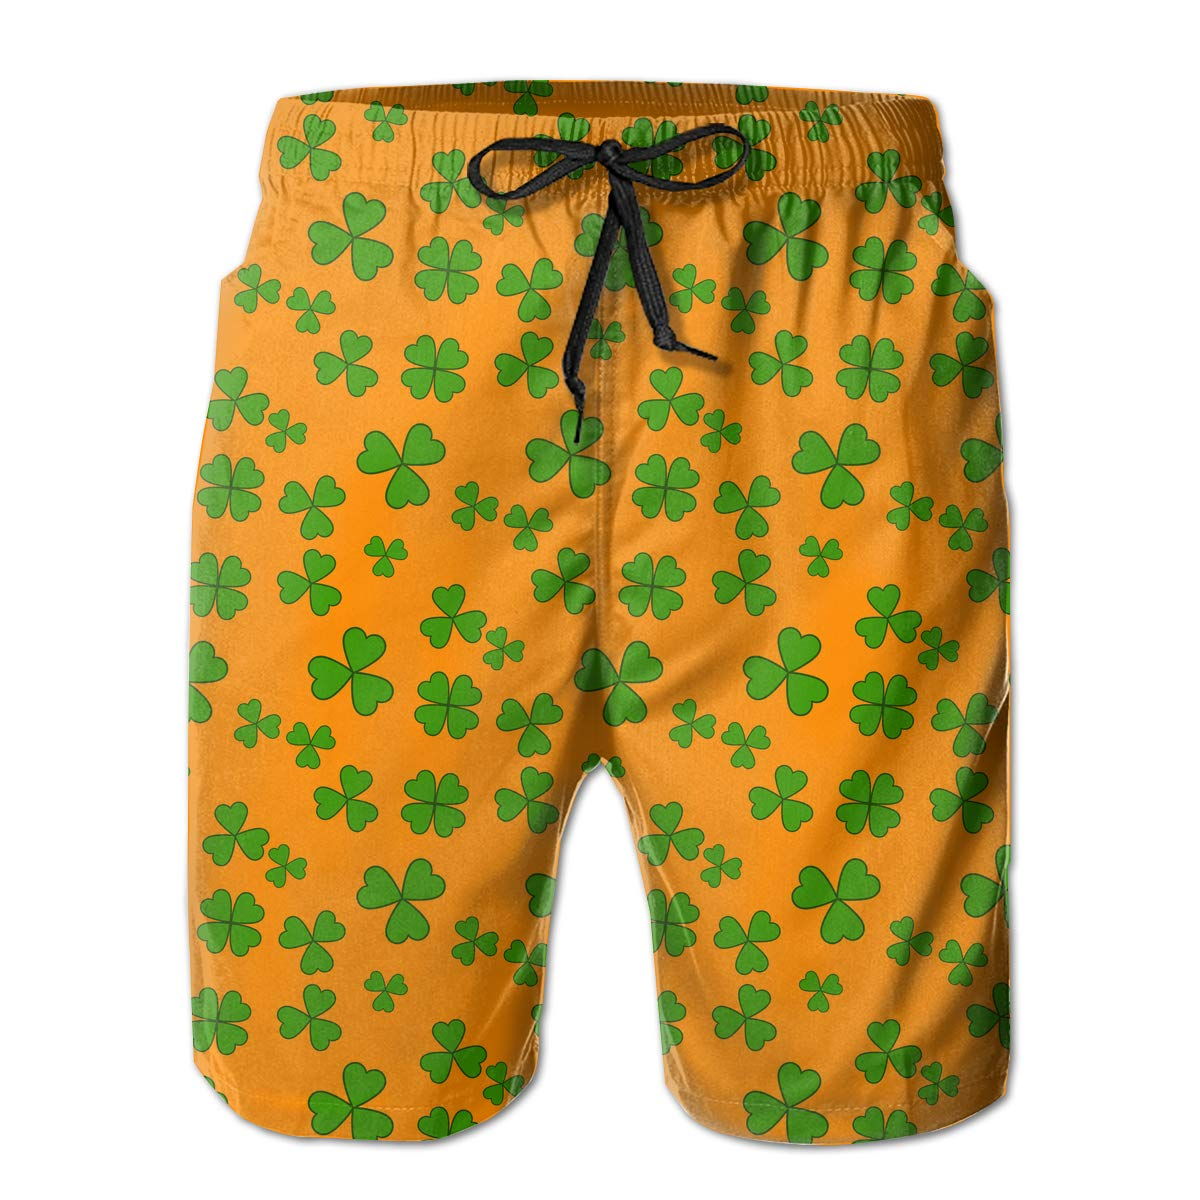 Xk7@KU Mens Casual Beach Shorts Polyester St Patricks Day Shamrock Pattern Beachwear with Pockets